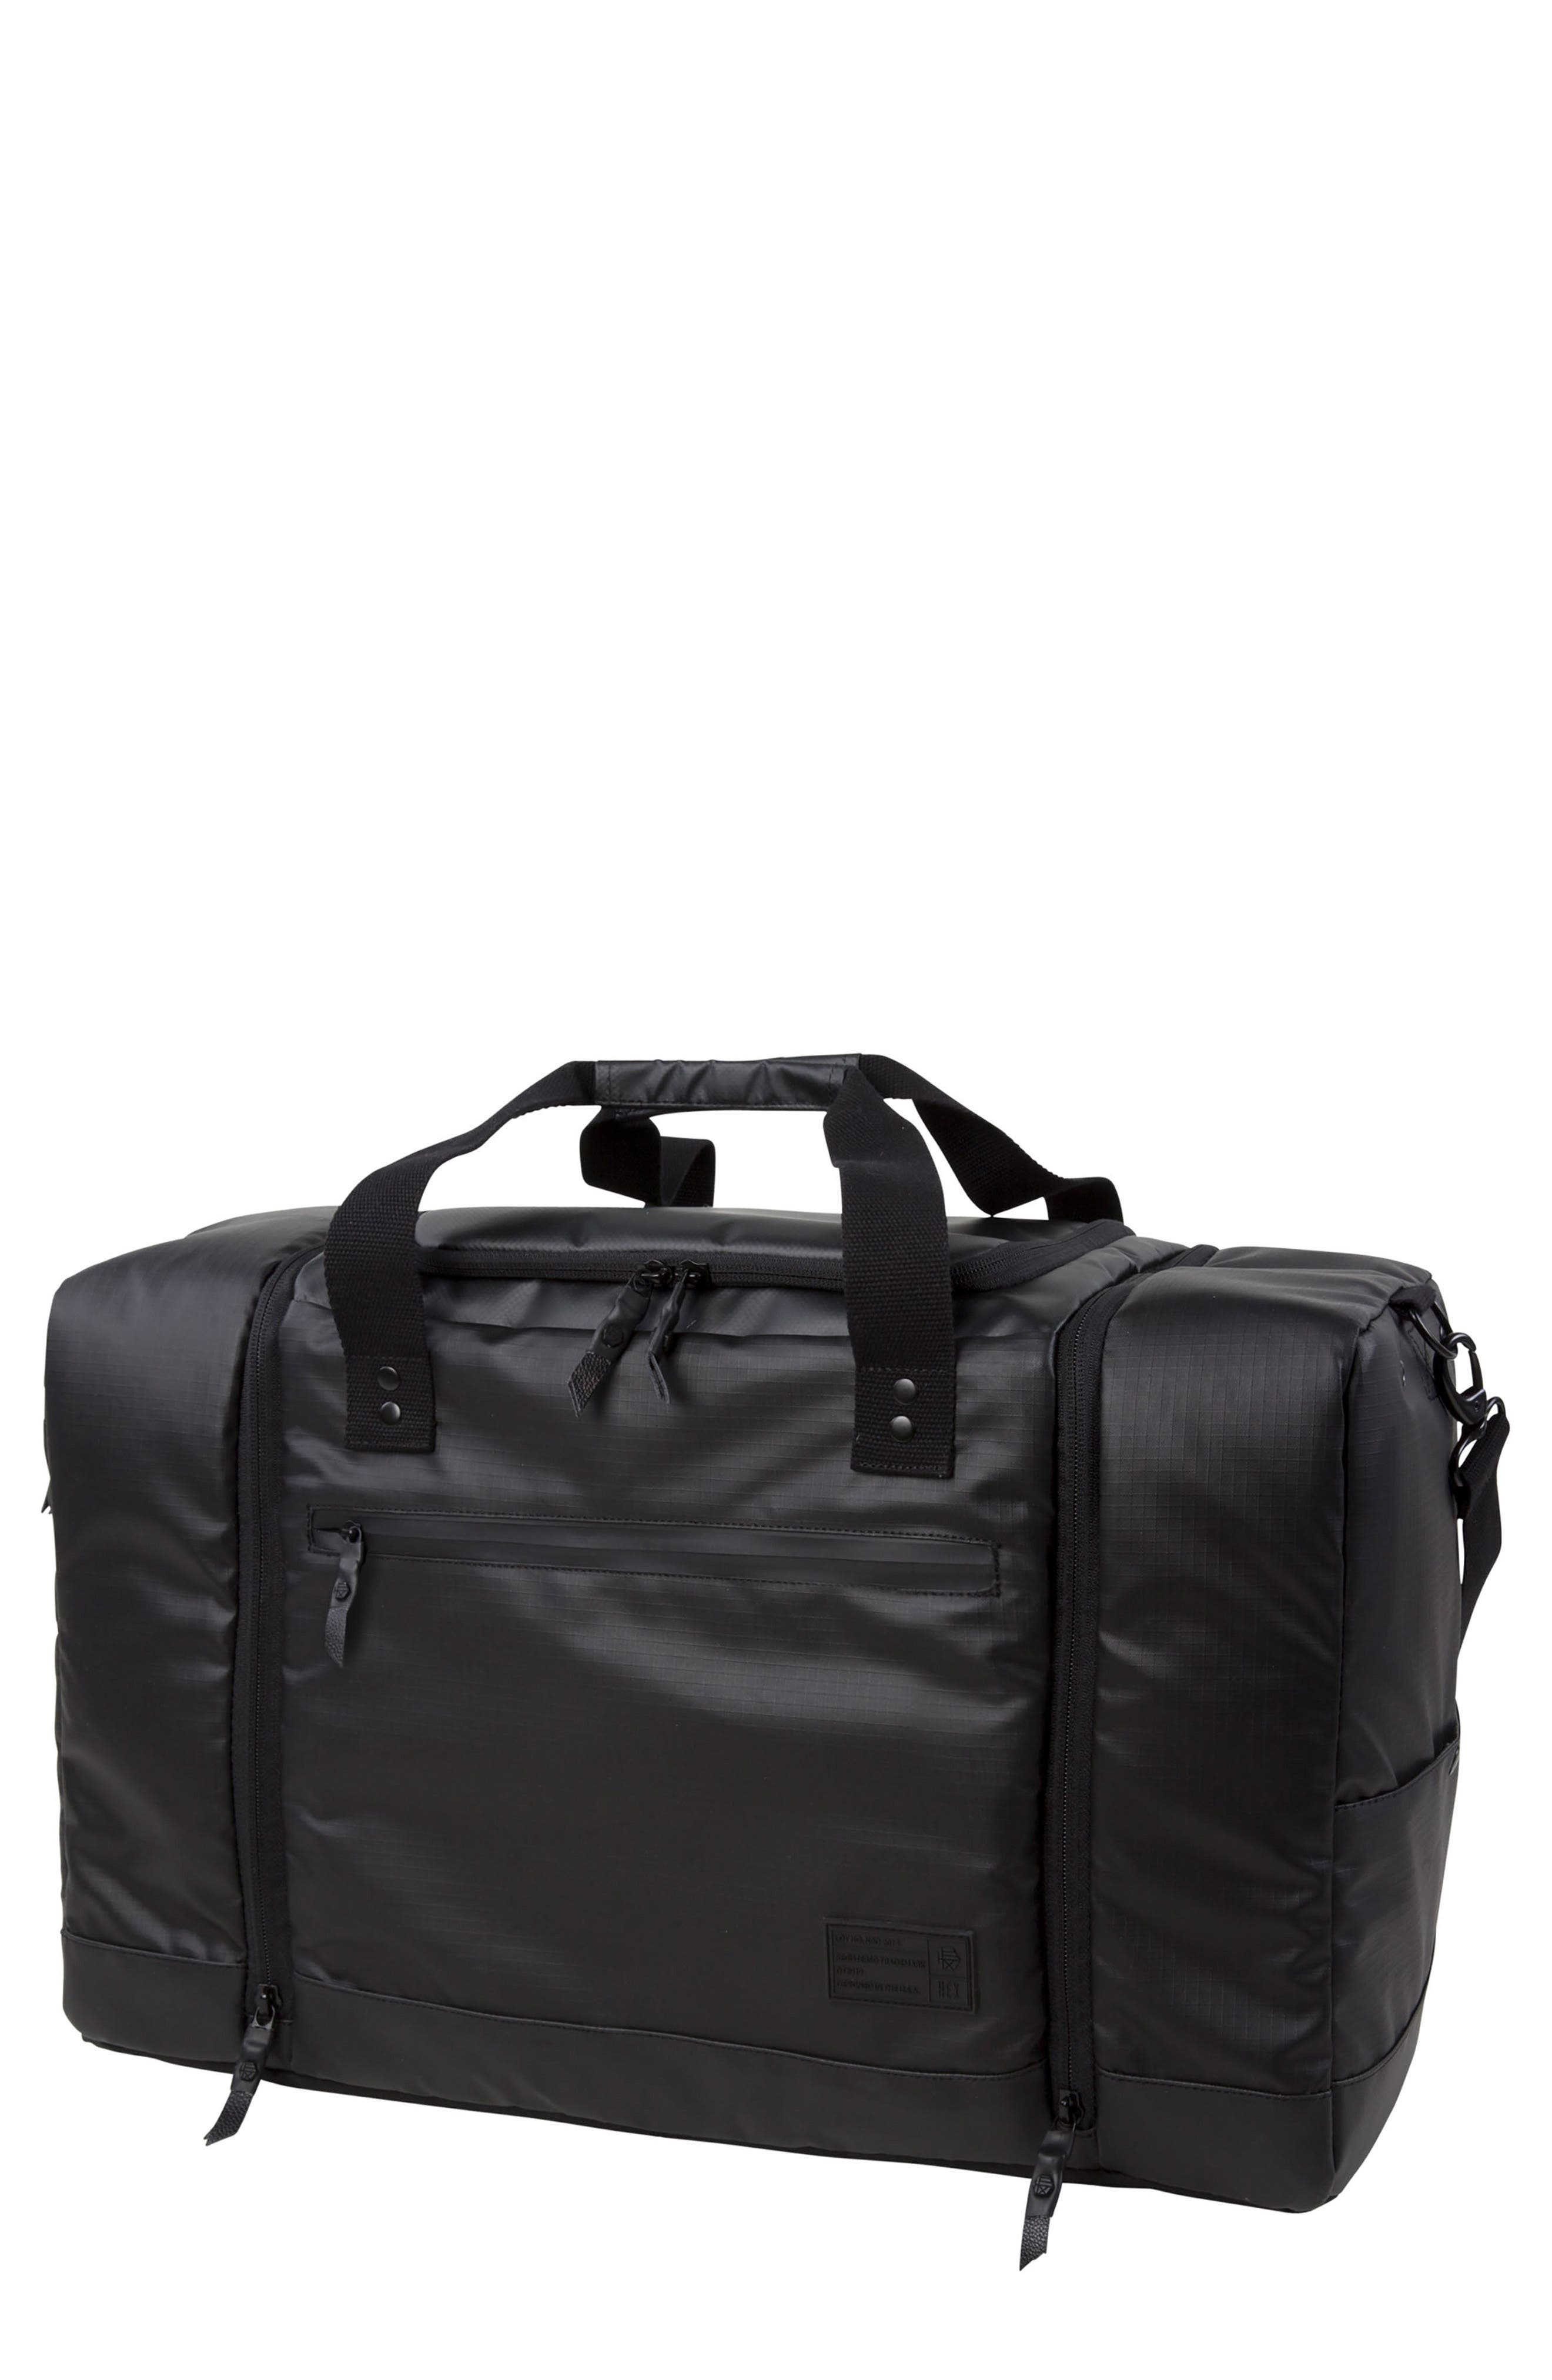 'Calibre' Sneaker Duffel Bag,                             Main thumbnail 1, color,                             003